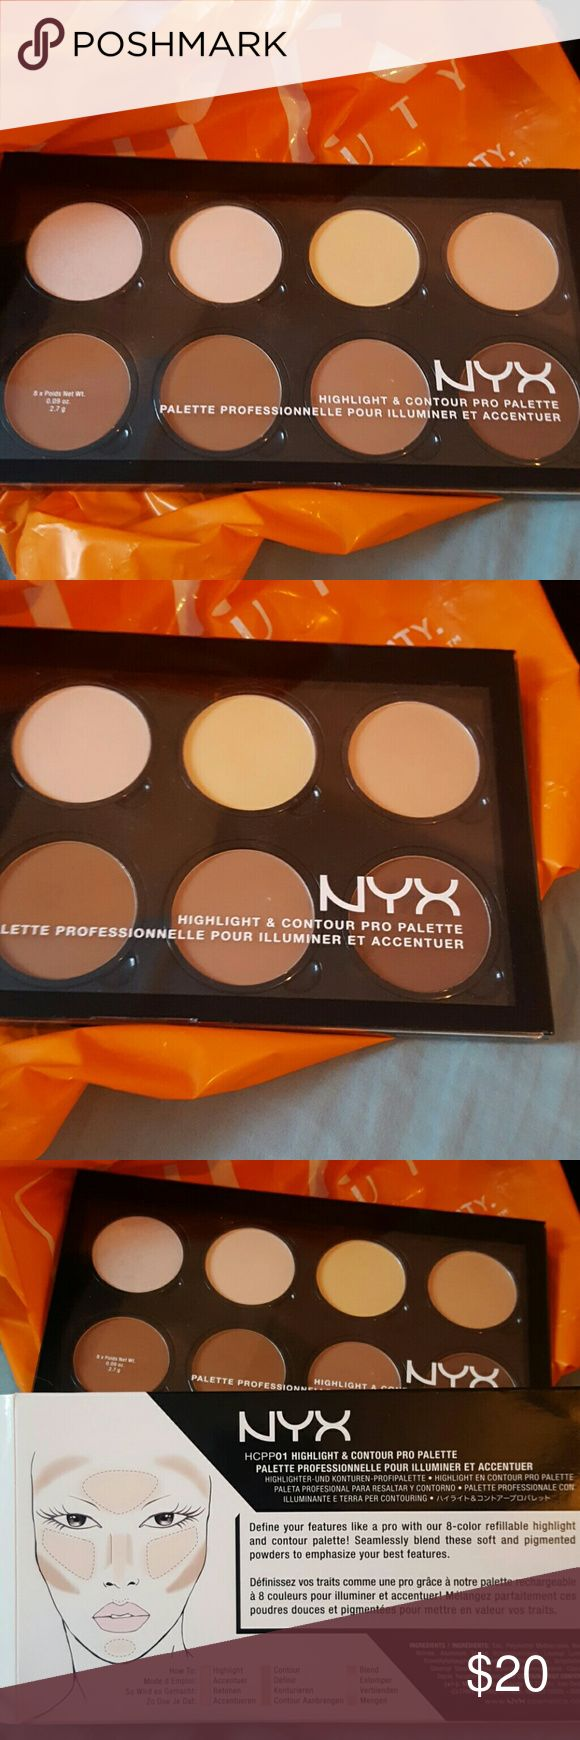 NYX PALETTE NYX Contour Palette. Swatched one time. Still in origional packaging. GREAT CONDITION! #1 Seller in stores NYX Makeup Face Powder